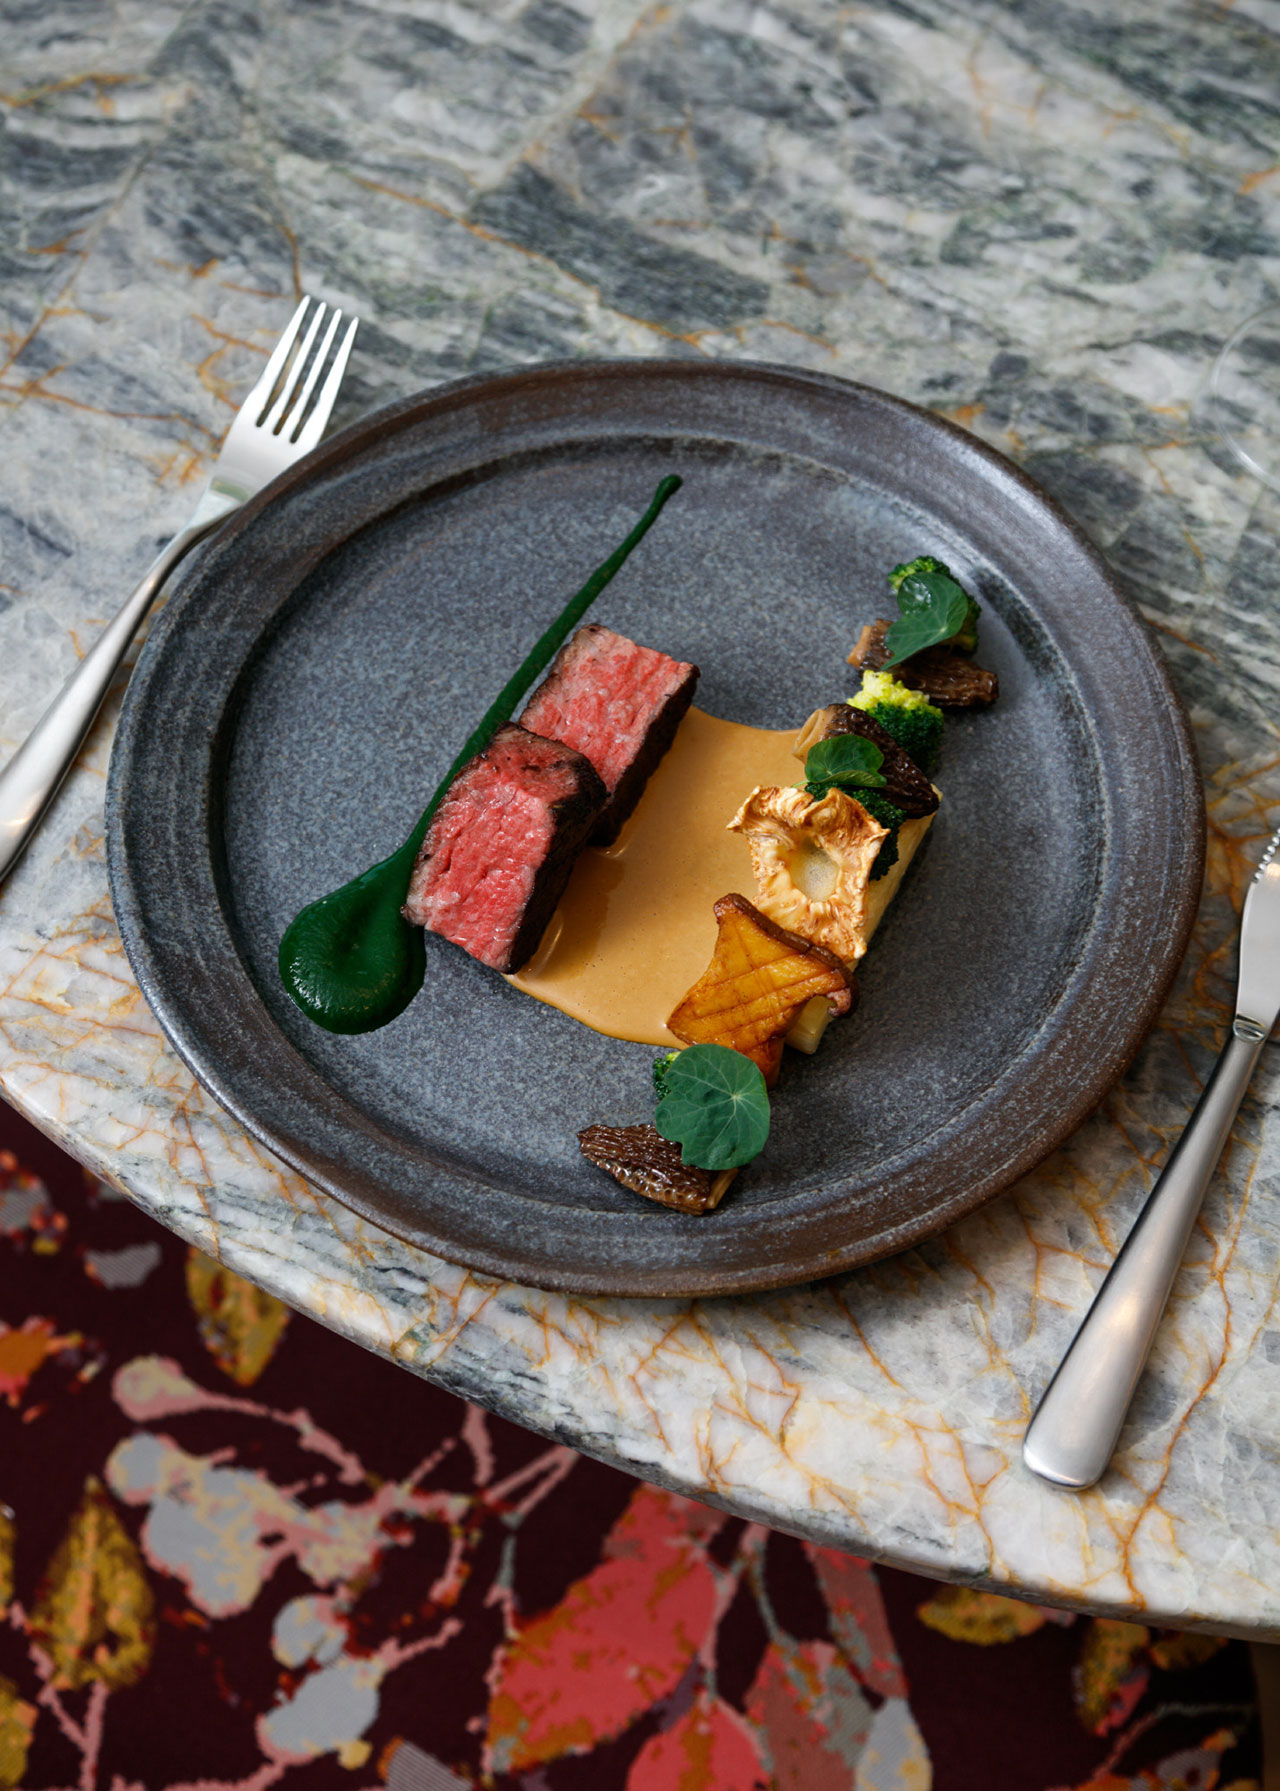 Botanist - Wagyu Beef. Photo by Ian Lanterman via v2com.